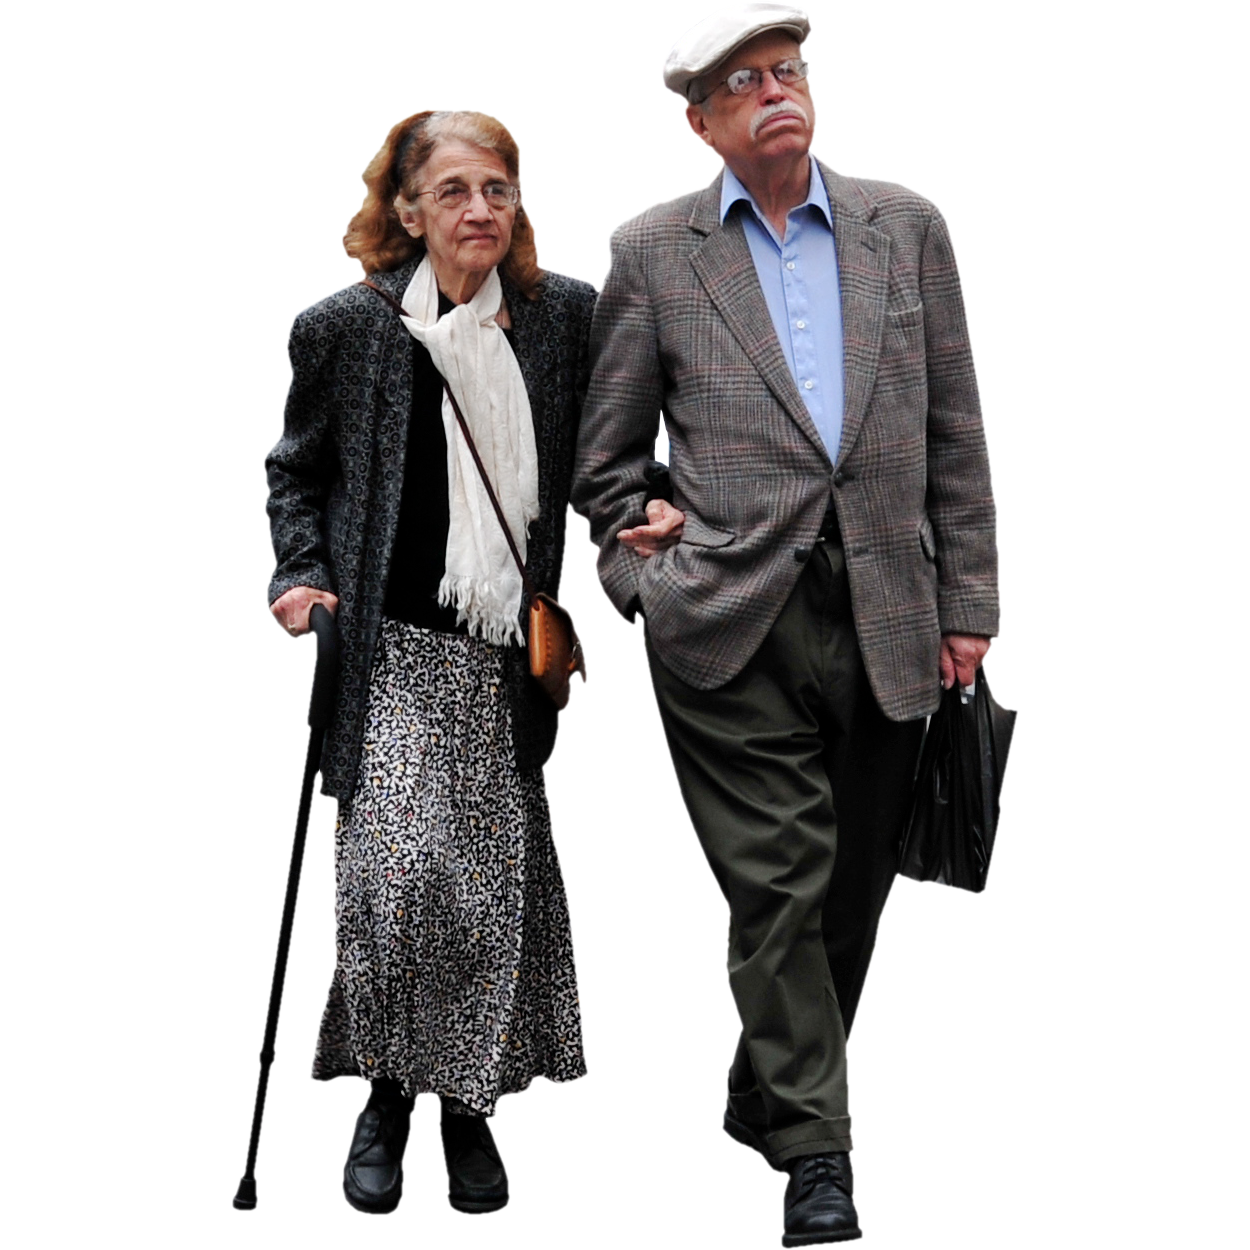 Old couple png. People on the town